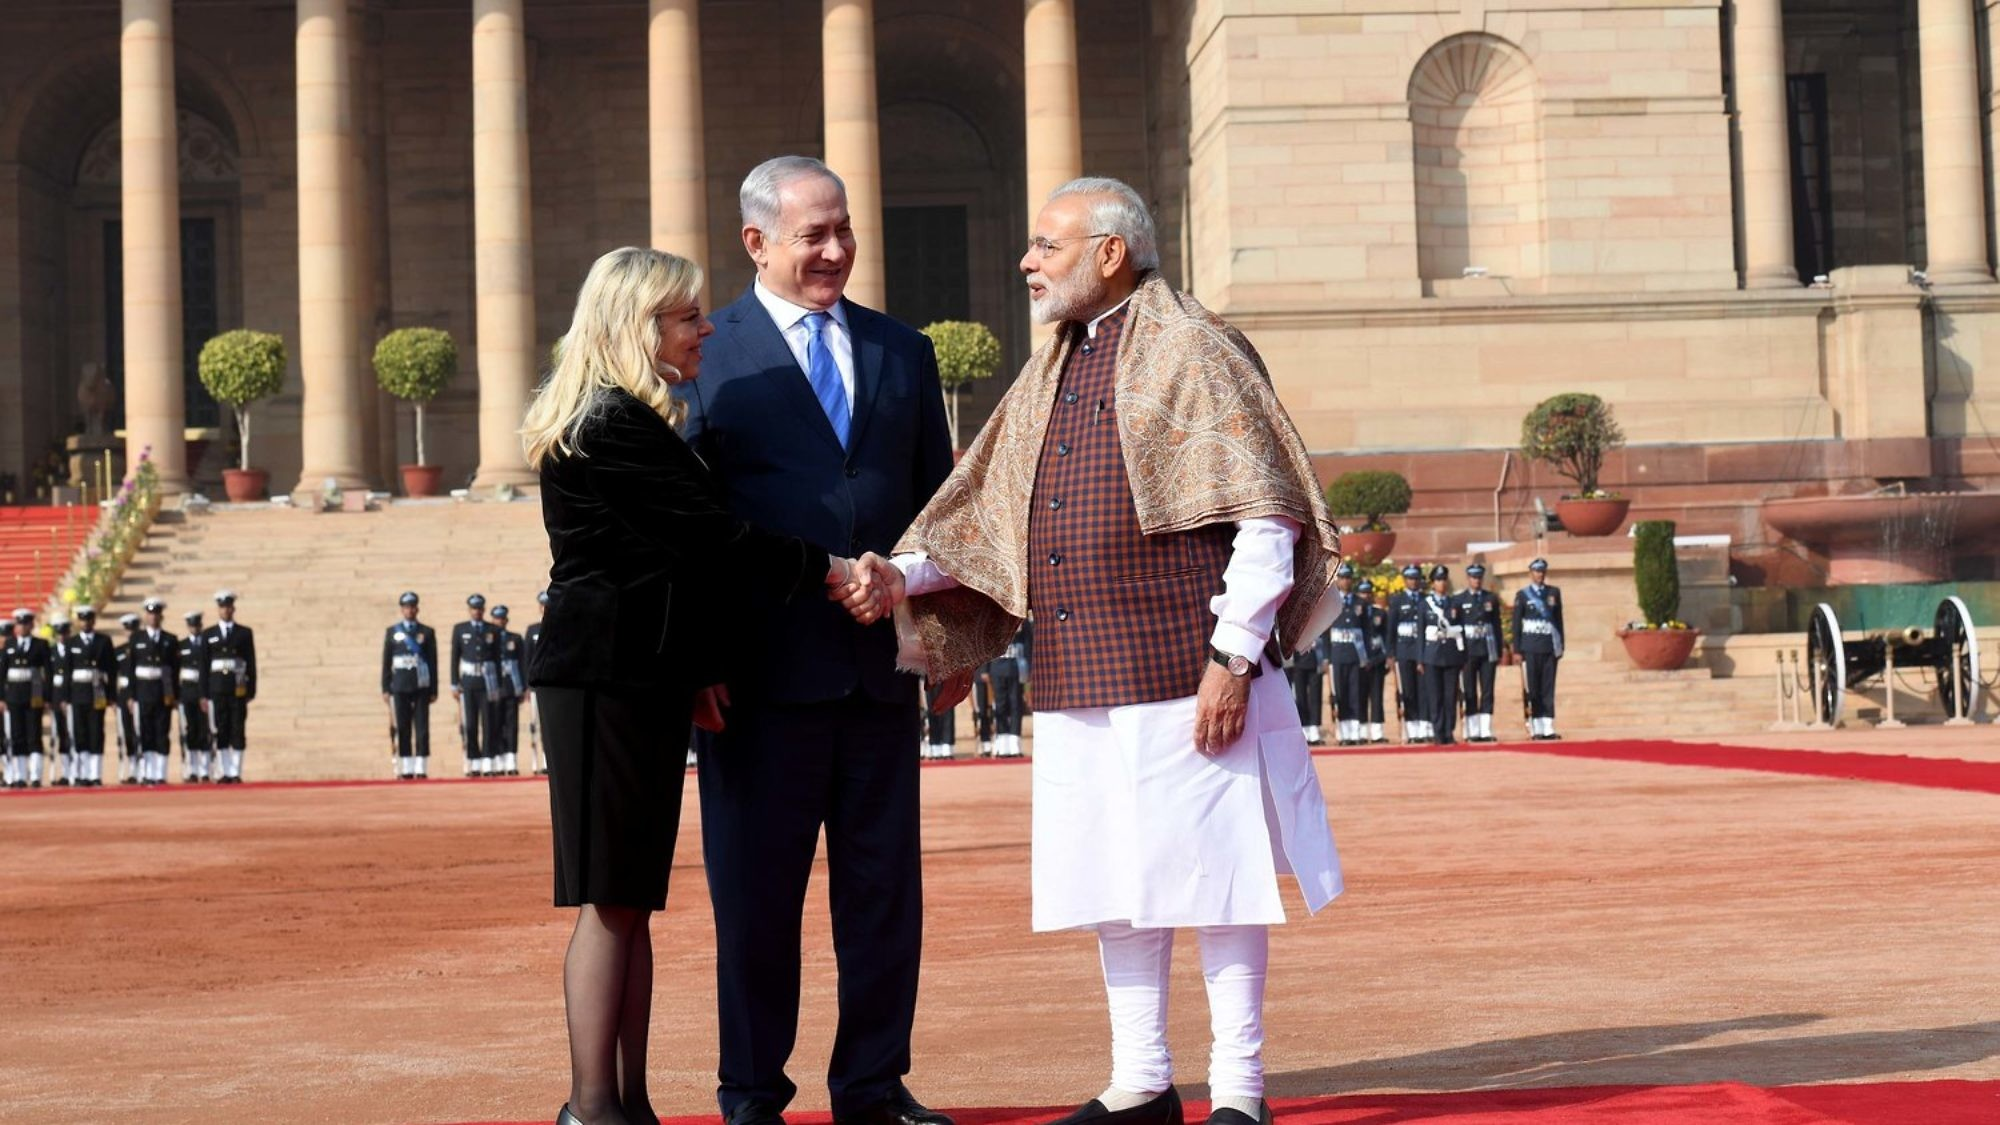 Prime Minister Benjamin Netanyahu (center) and his wife Sara are welcomed by Indian Prime Minister Narendra Modi at the Presidential Palace in New Delhi. Credit: Avi Ohayon/GPO.